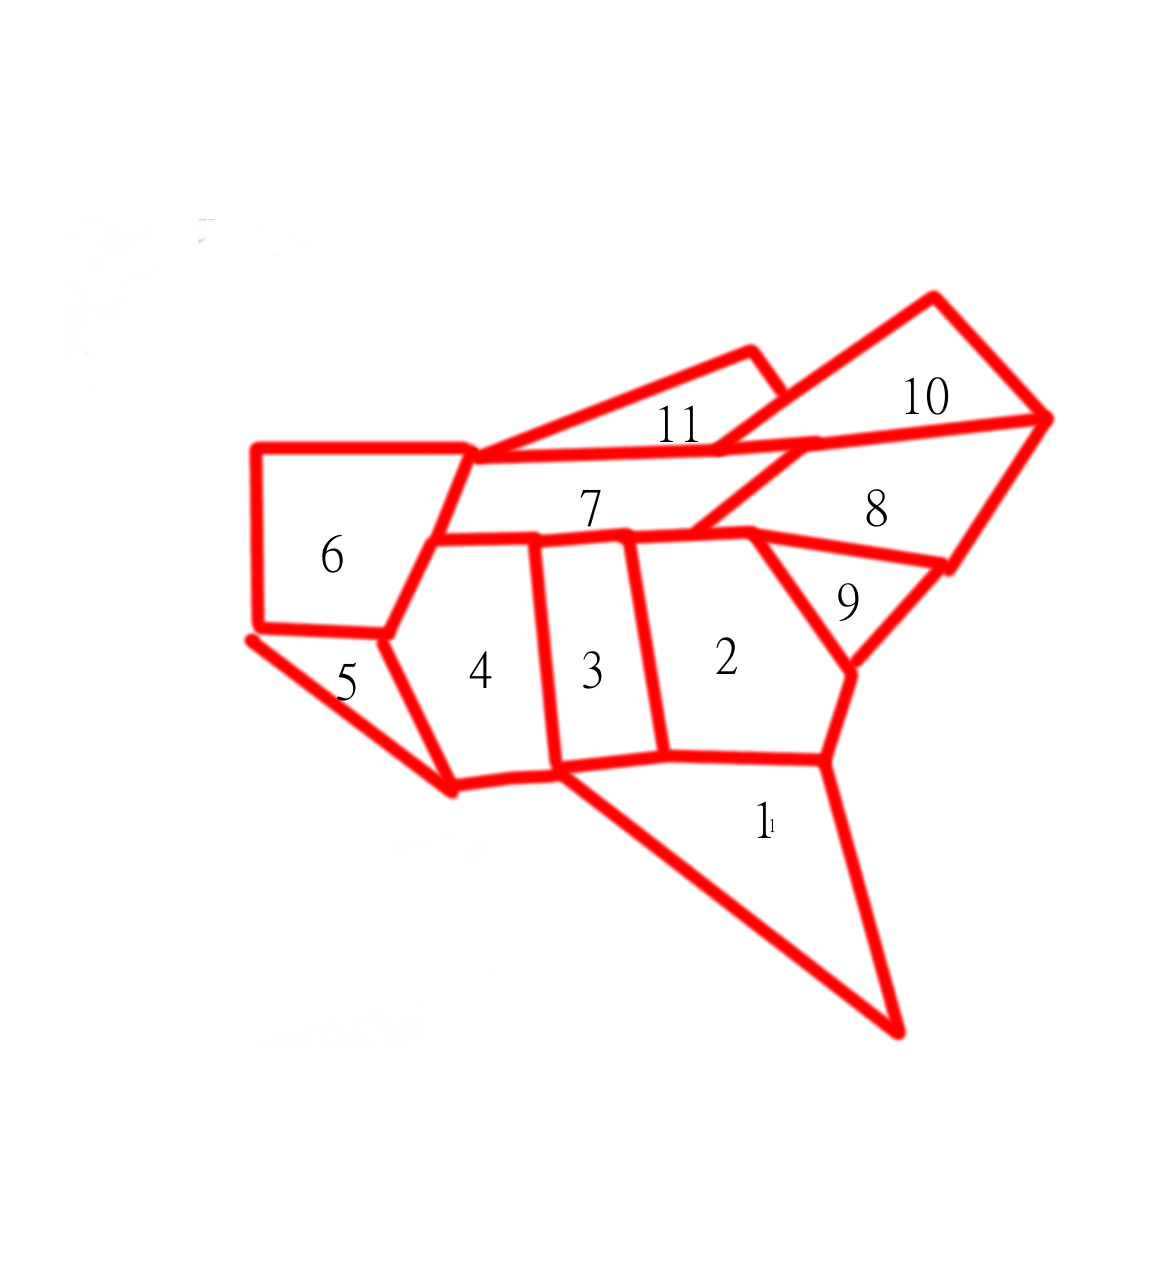 now imagine you draw an infinite number of lines across this map from north to south and group together any infinite collection of lines that cross through